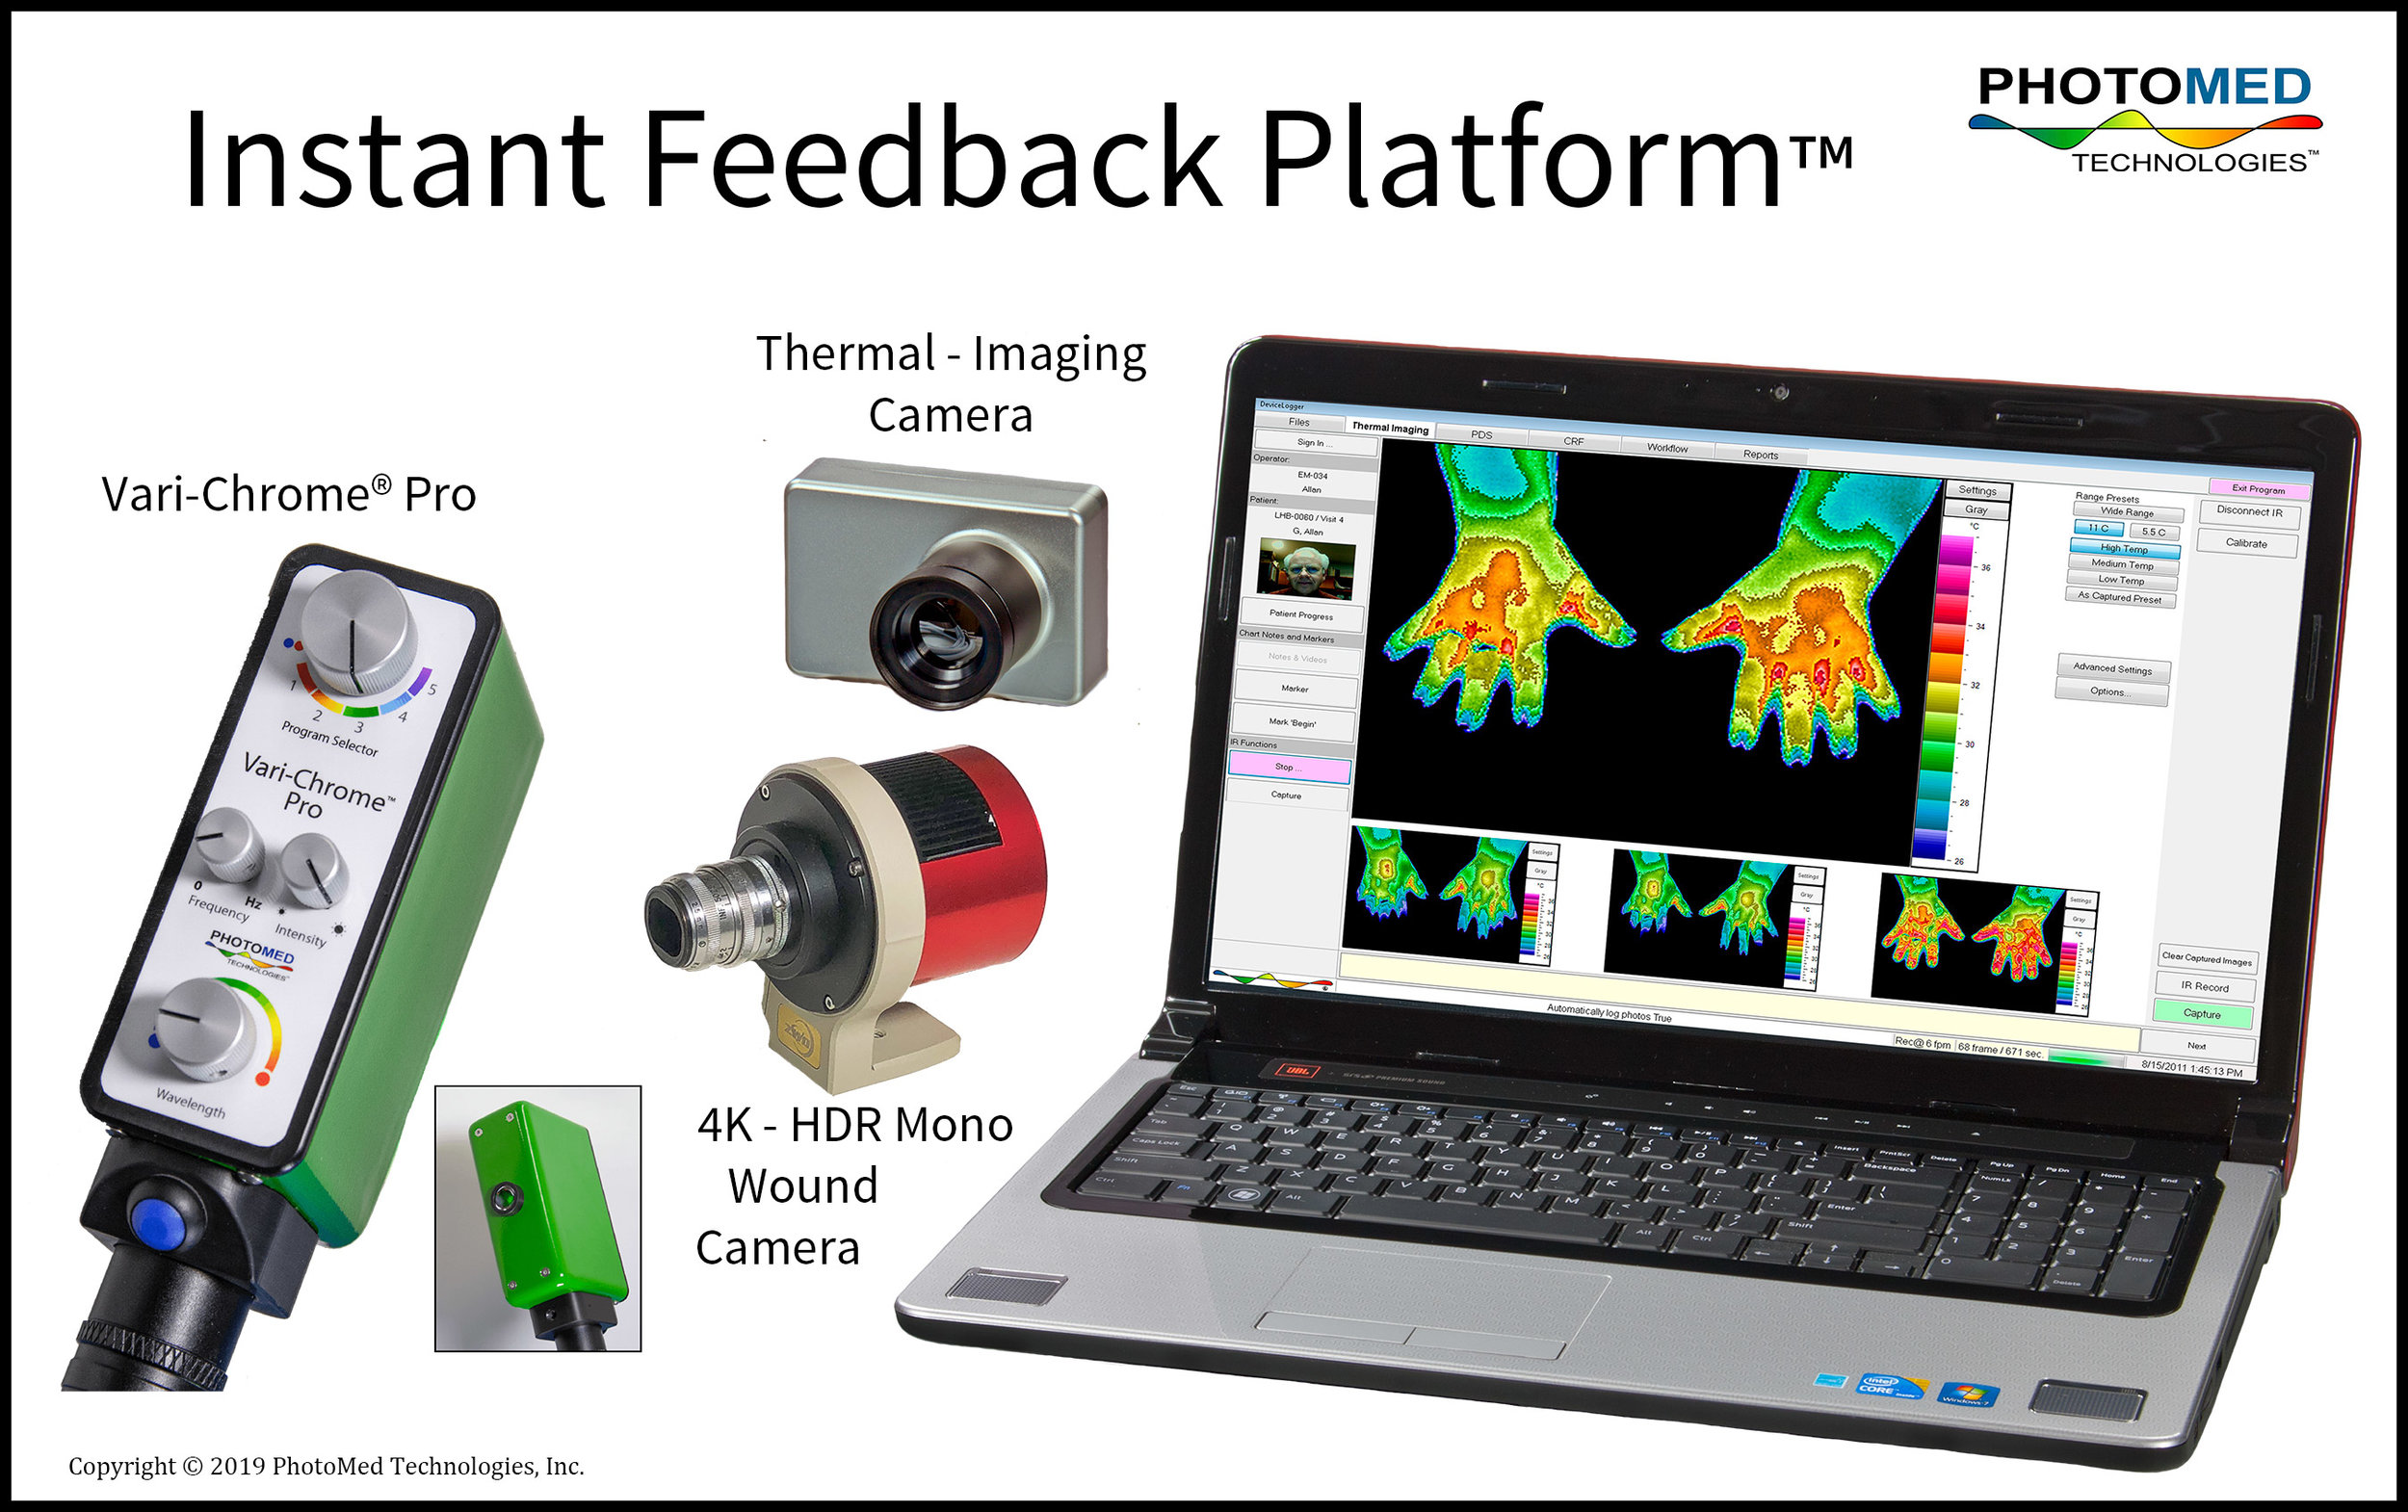 Practitioners can use the Instant Feedback Platform™ to record physiological responses with their patients or to manage studies in small clinics or portable PhD studies. The recordings confirm previously underappreciated effects of photobiomodulation therapy.